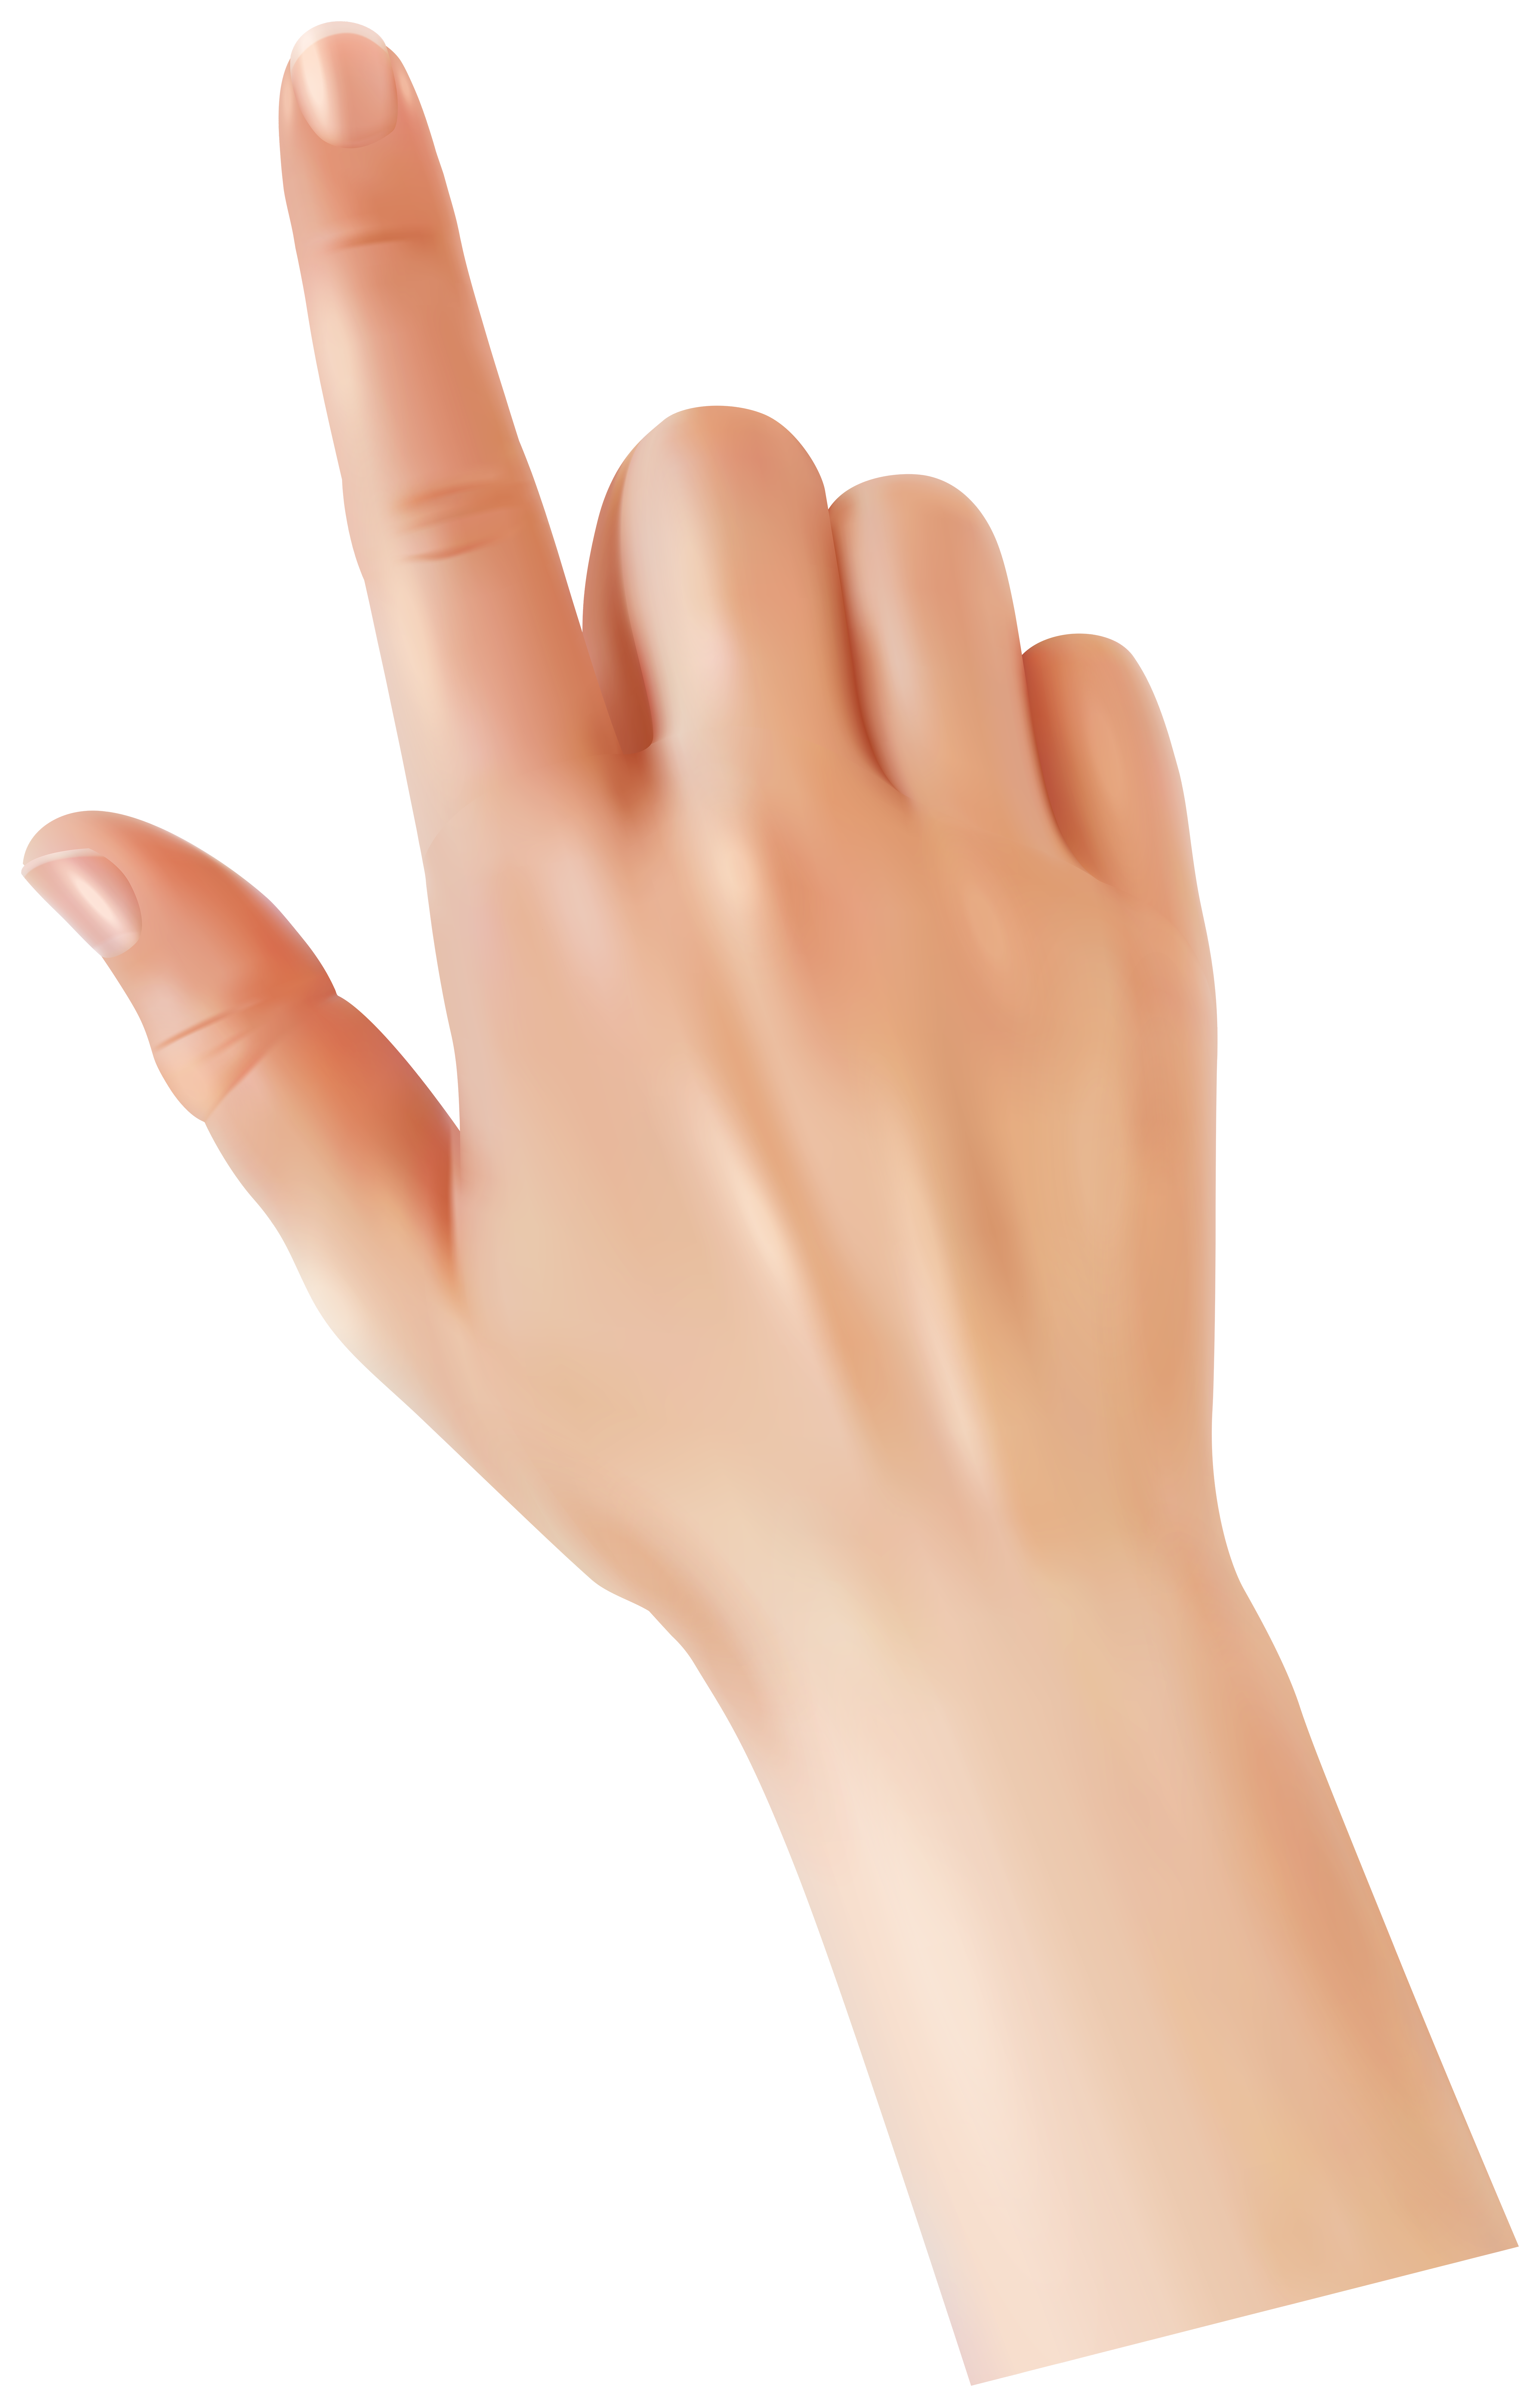 Hand With Touching Finger Png Clipart 787634 Png Images Pngio Hand png collections download alot of images for hand download free with high quality for designers. pngio com